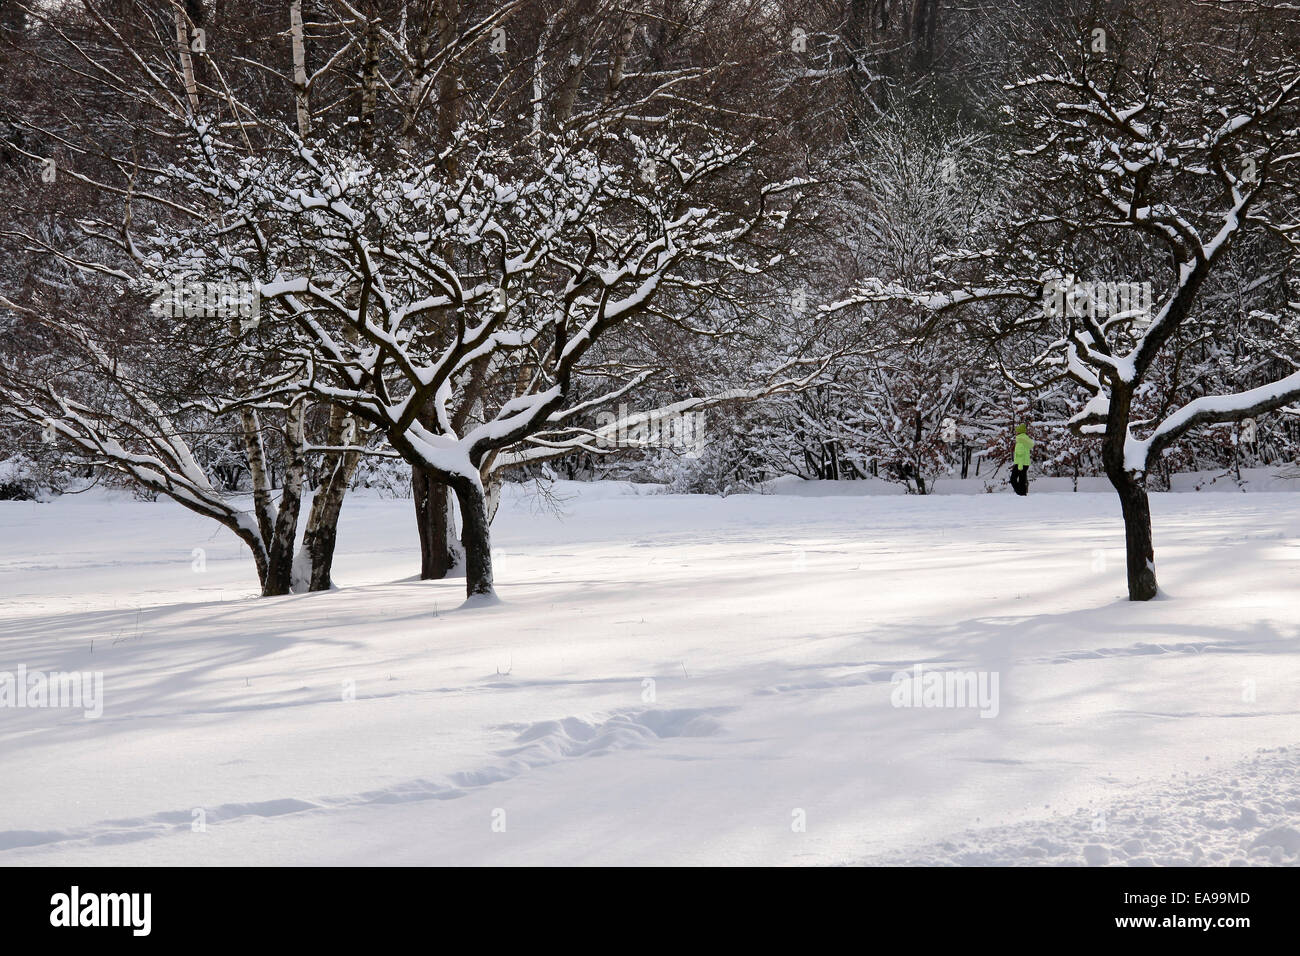 Snowy fruit trees at Engenhahn in the Taunus, Hesse, Germany - Stock Image